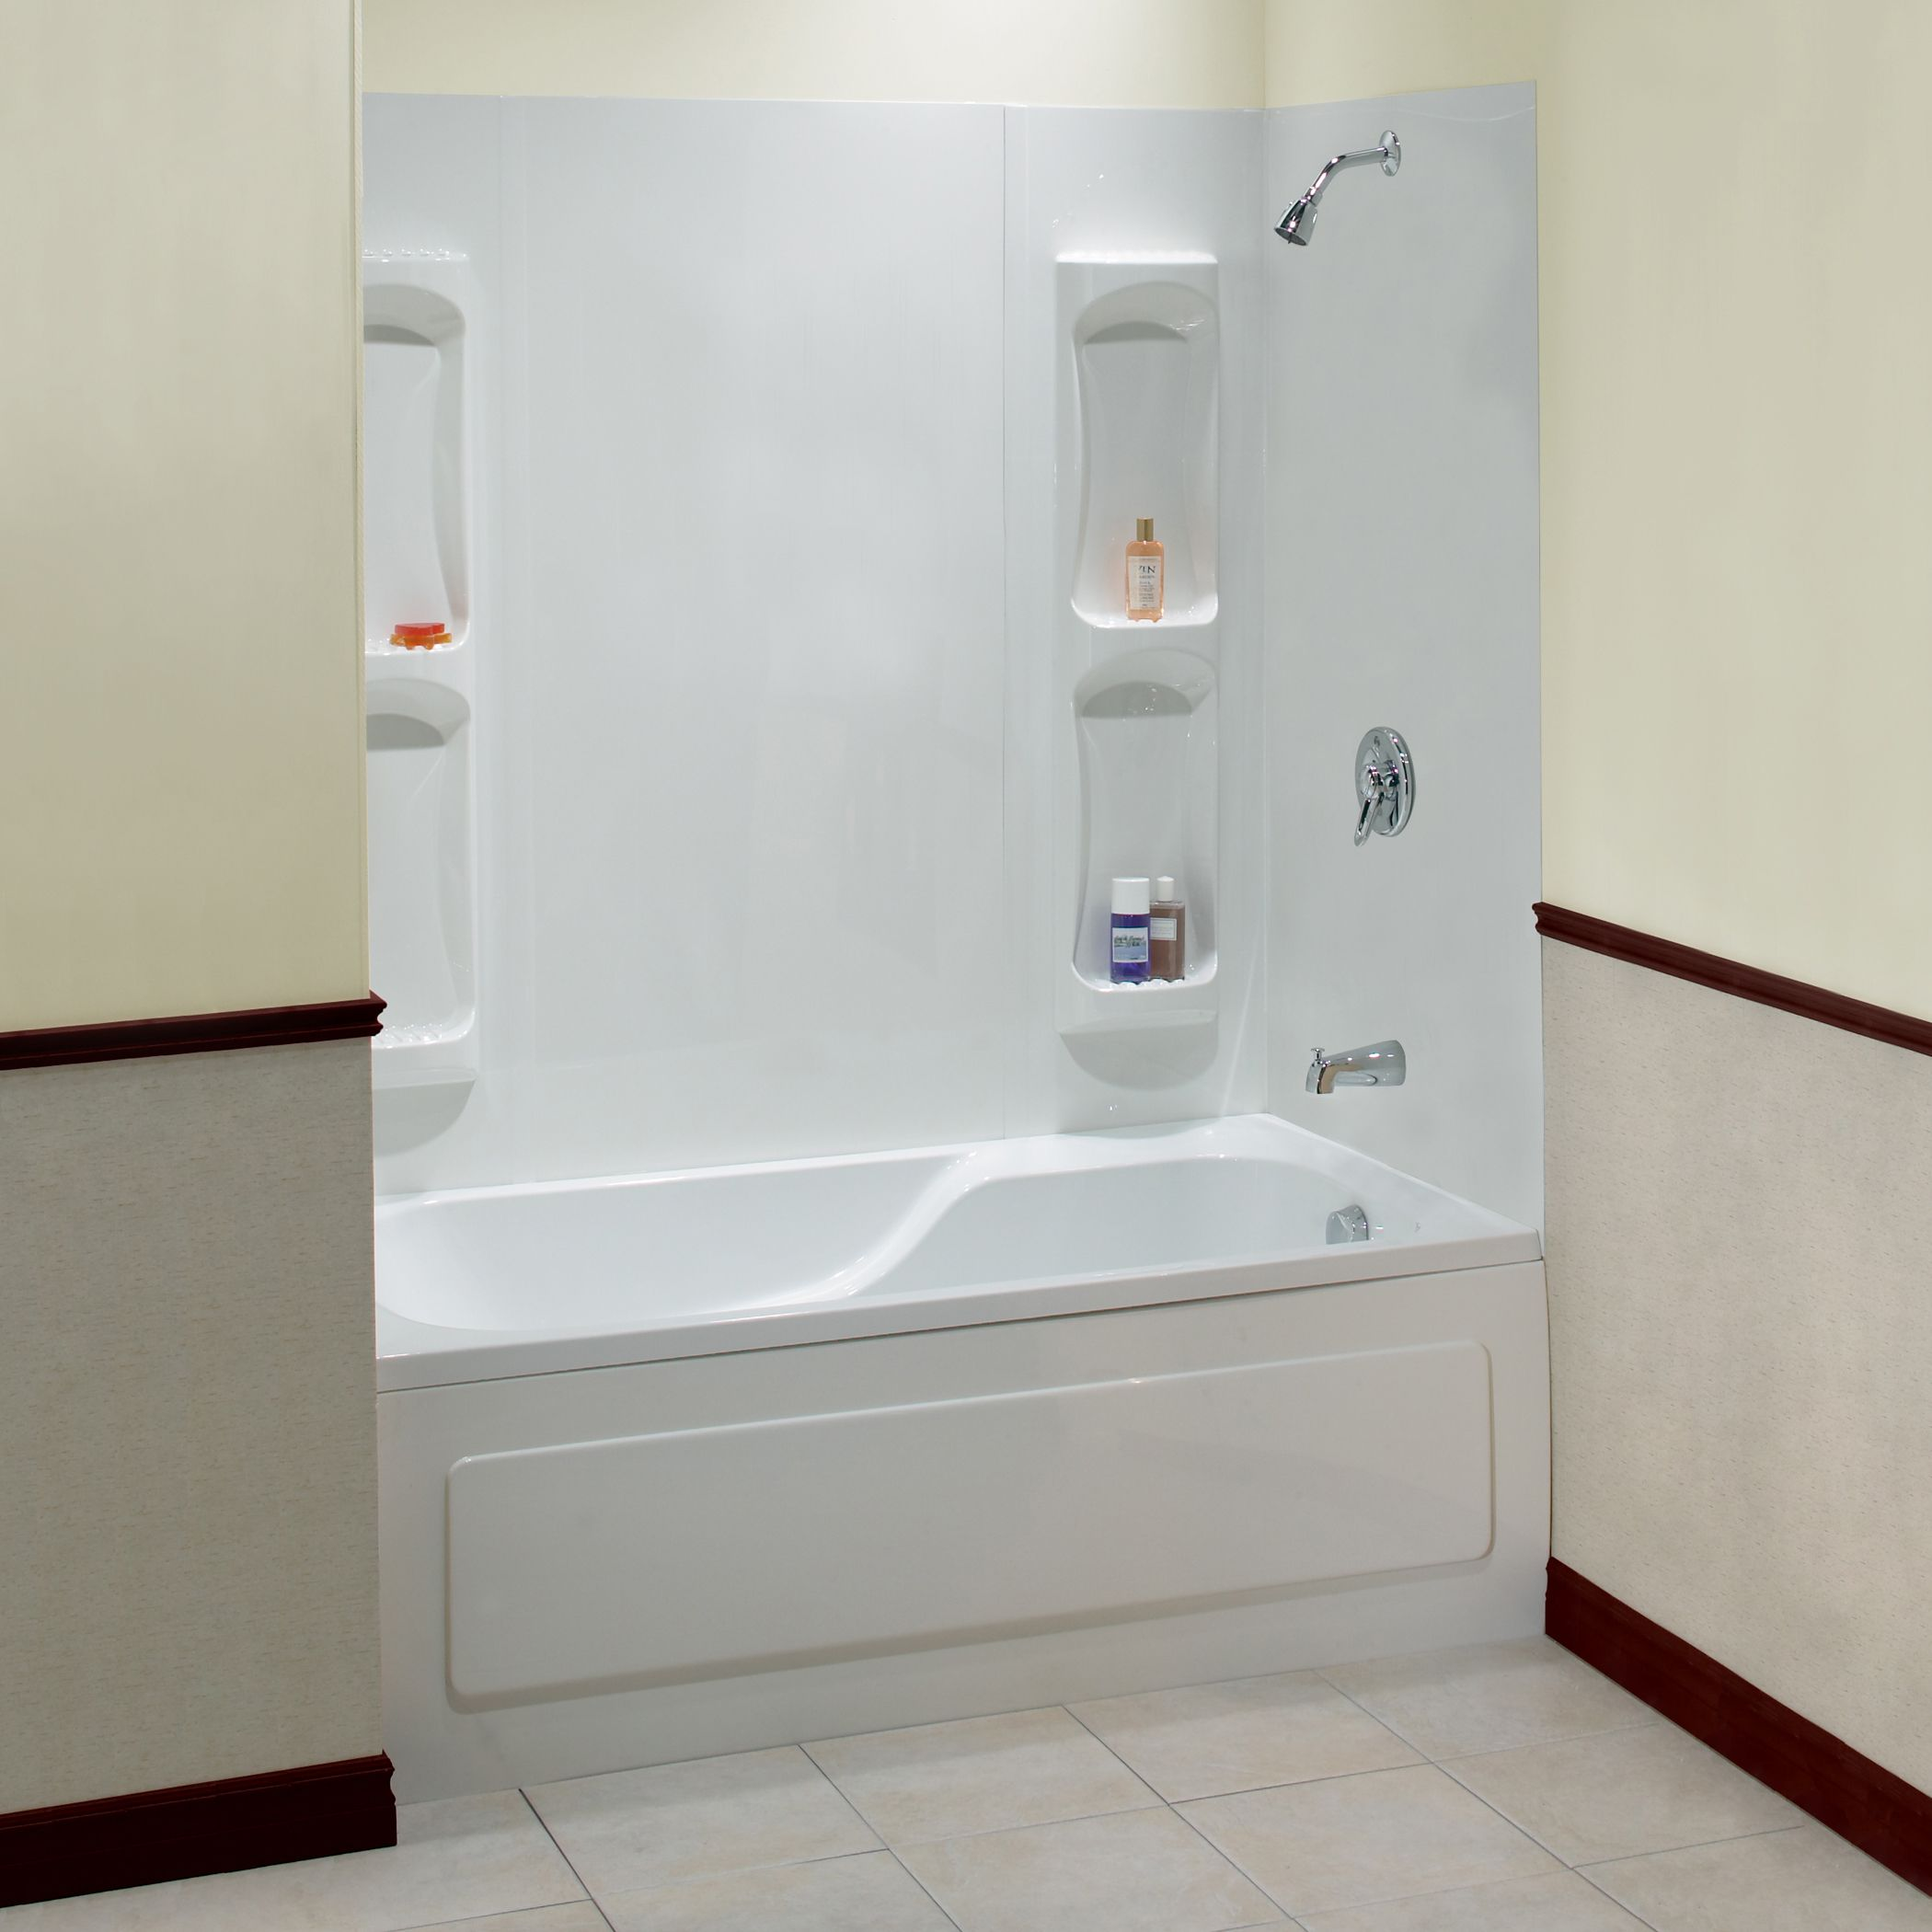 Exceptional Stunning White Acrylic Wall And Soaking Tub Also Great Shower Tub Combo  With Built In Caddy